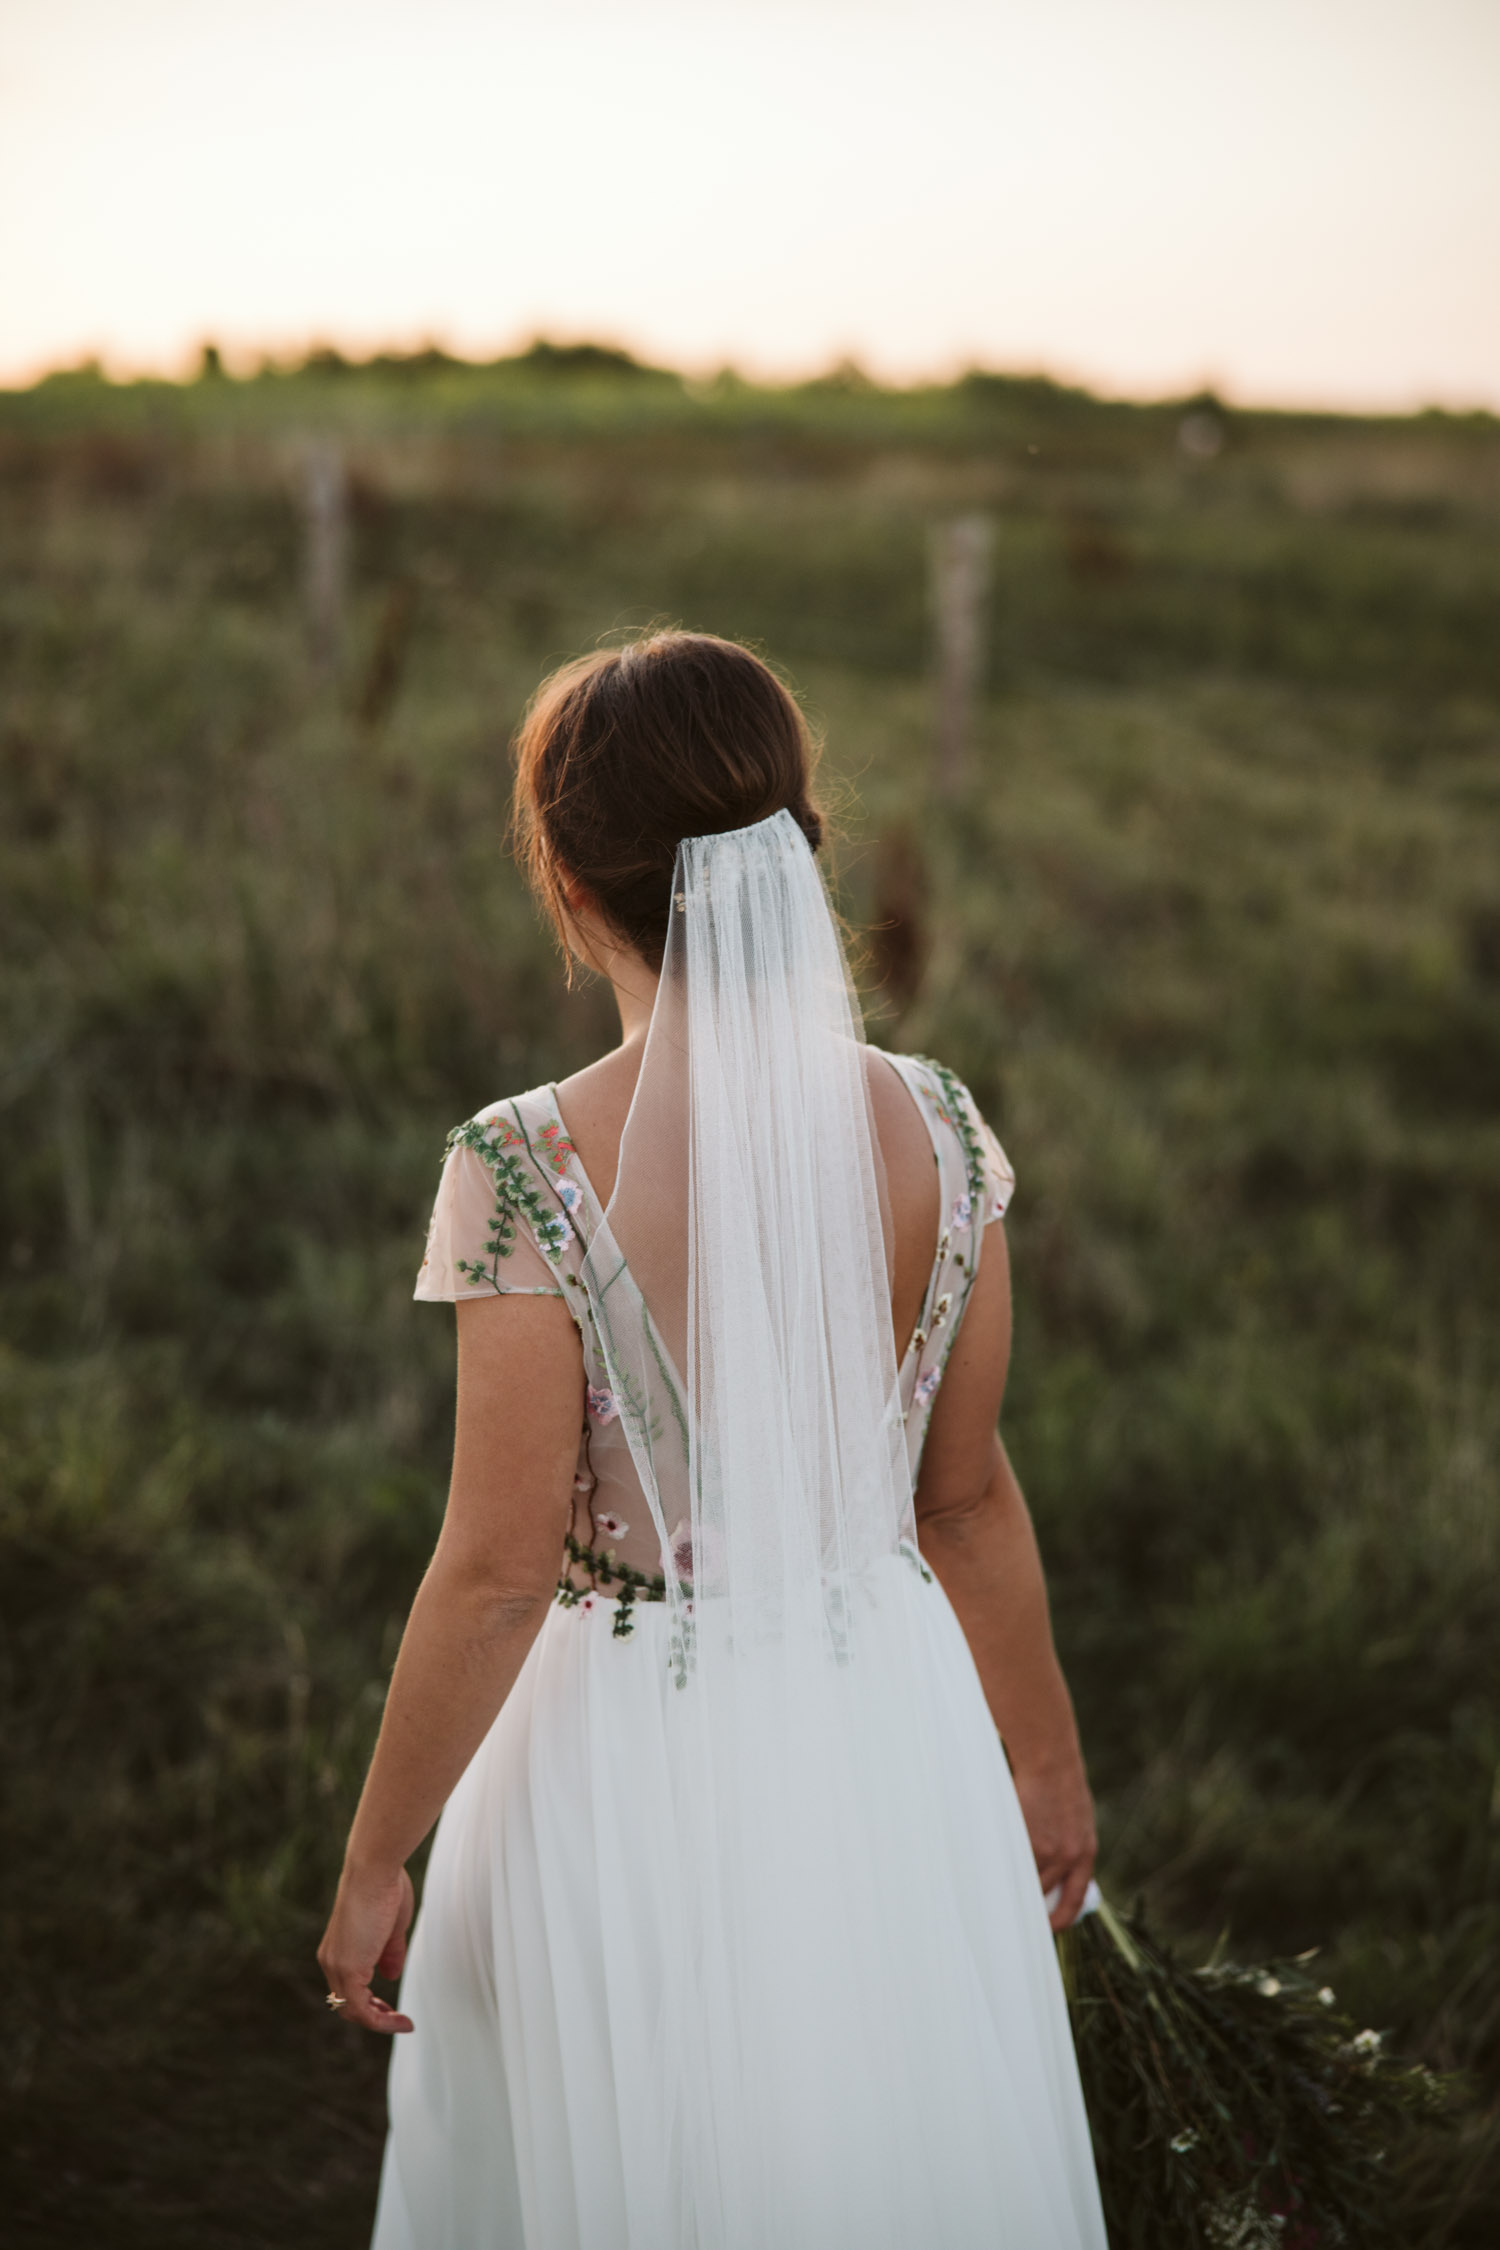 the bride in her dress (the back of the dress shown)